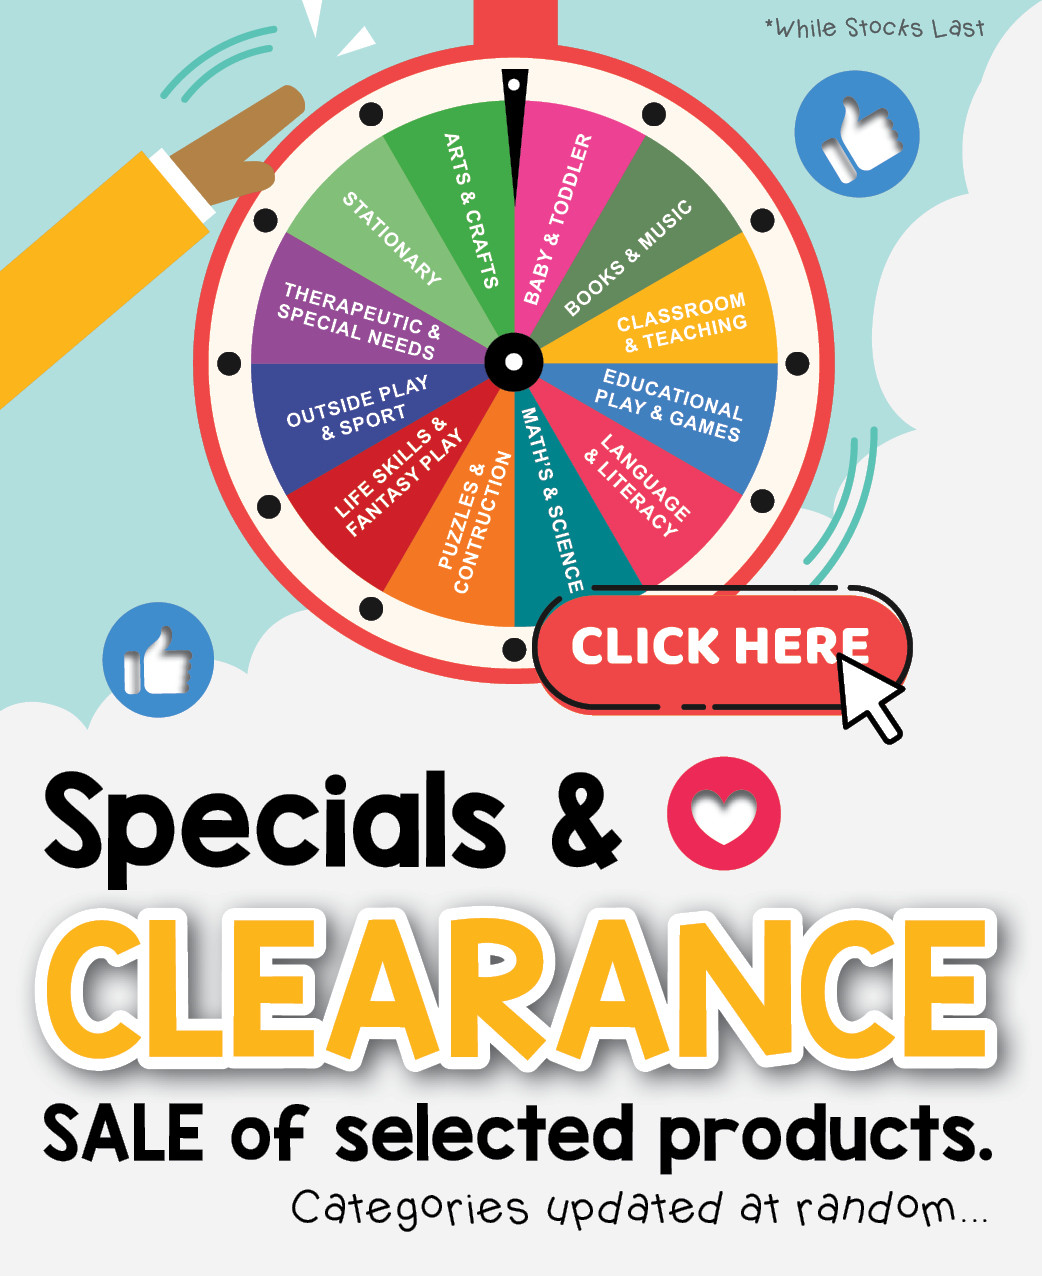 Specials & Clearance SALE